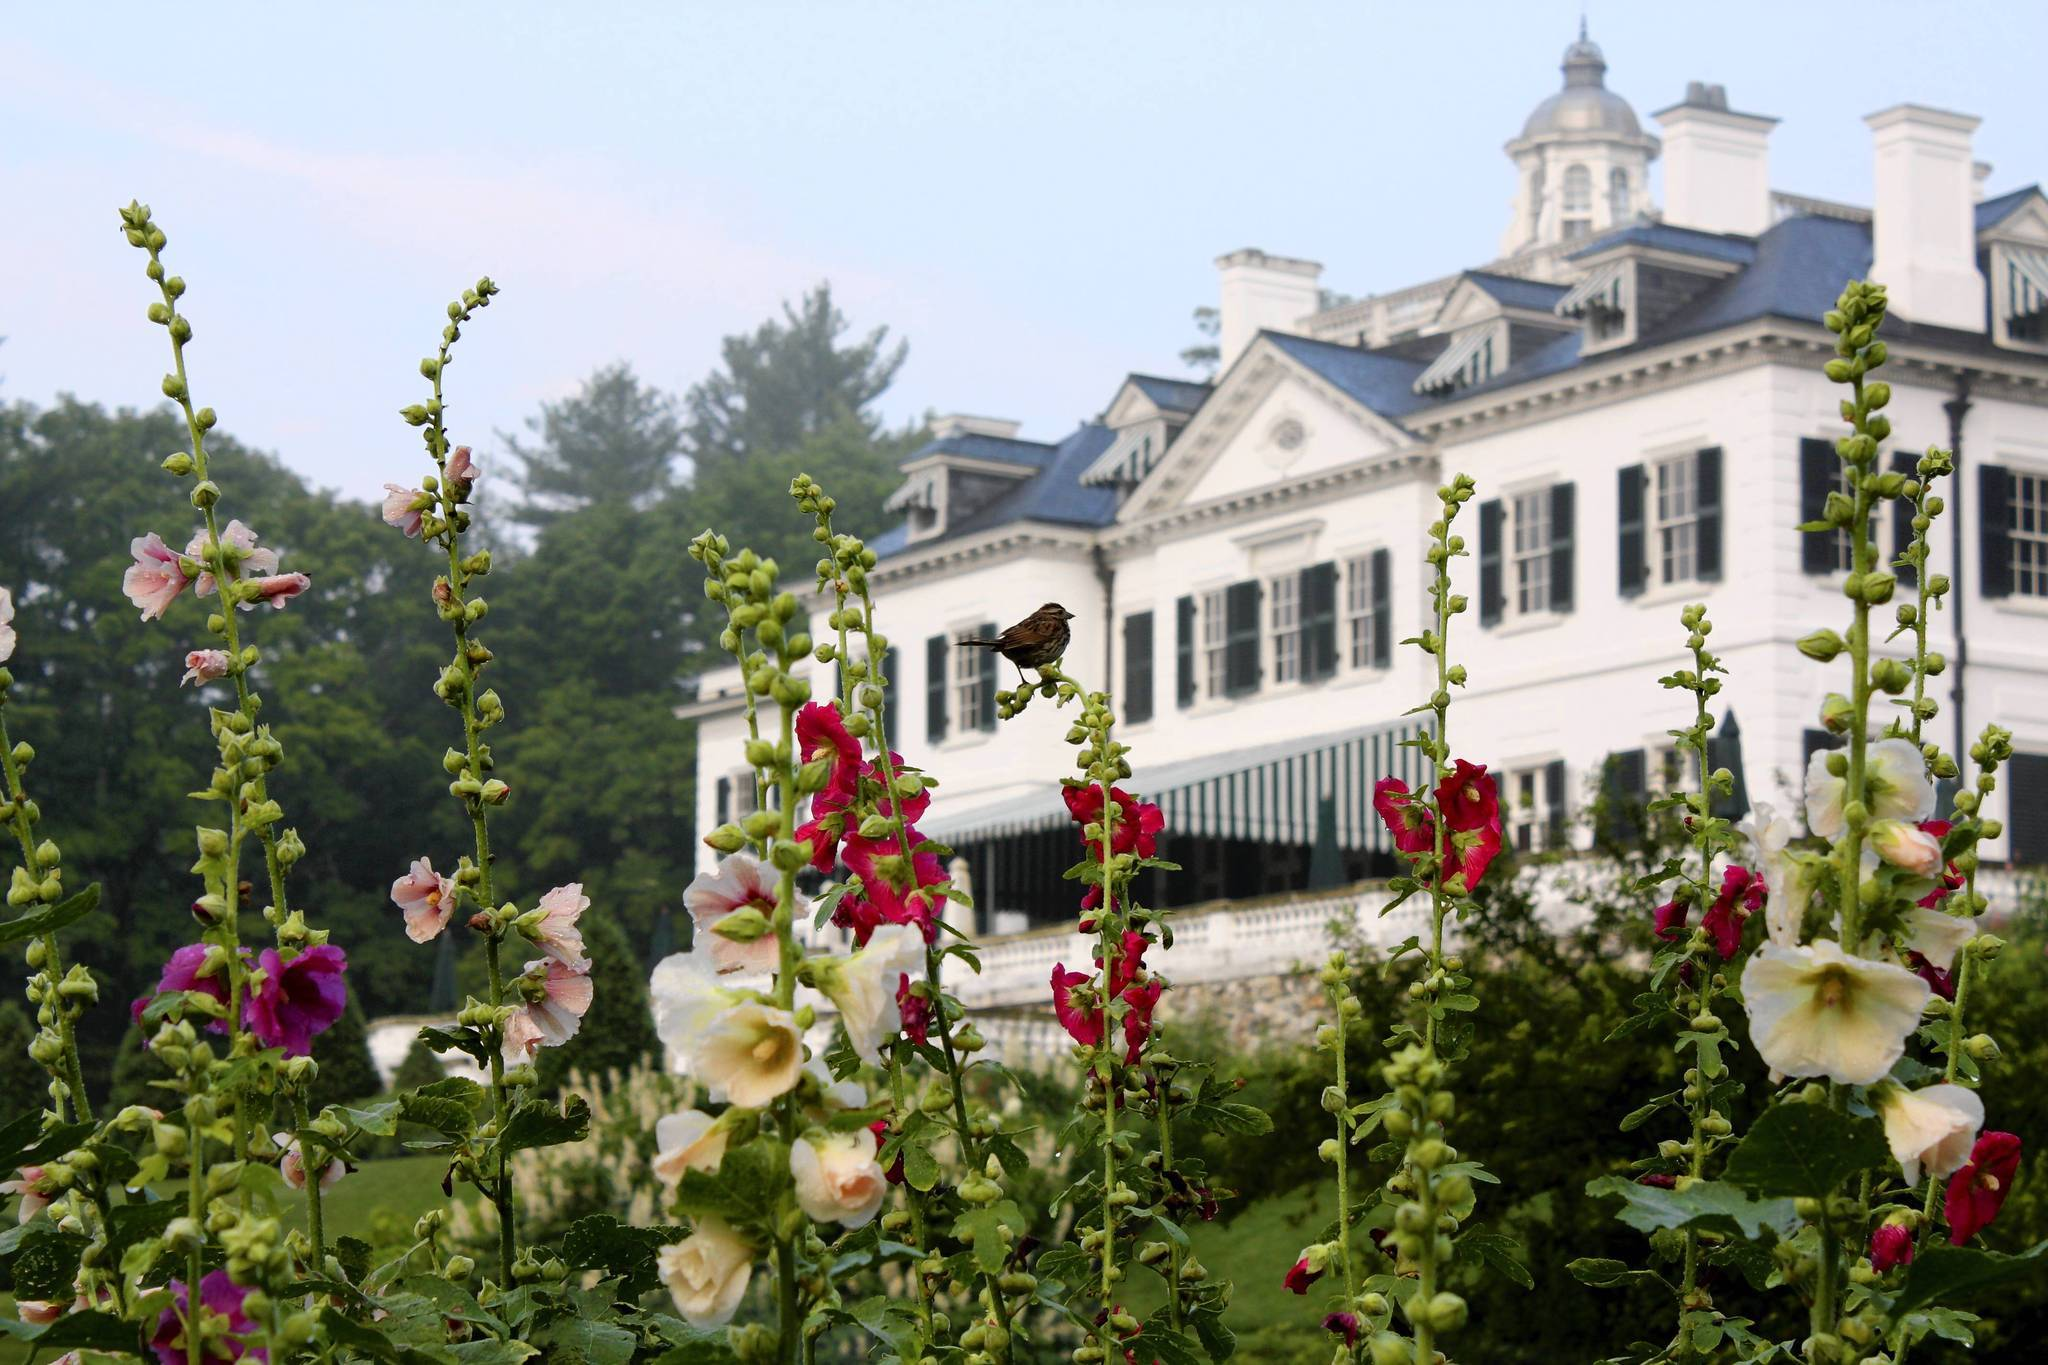 The Edith  Wharton house  is fashioned after an English country house.